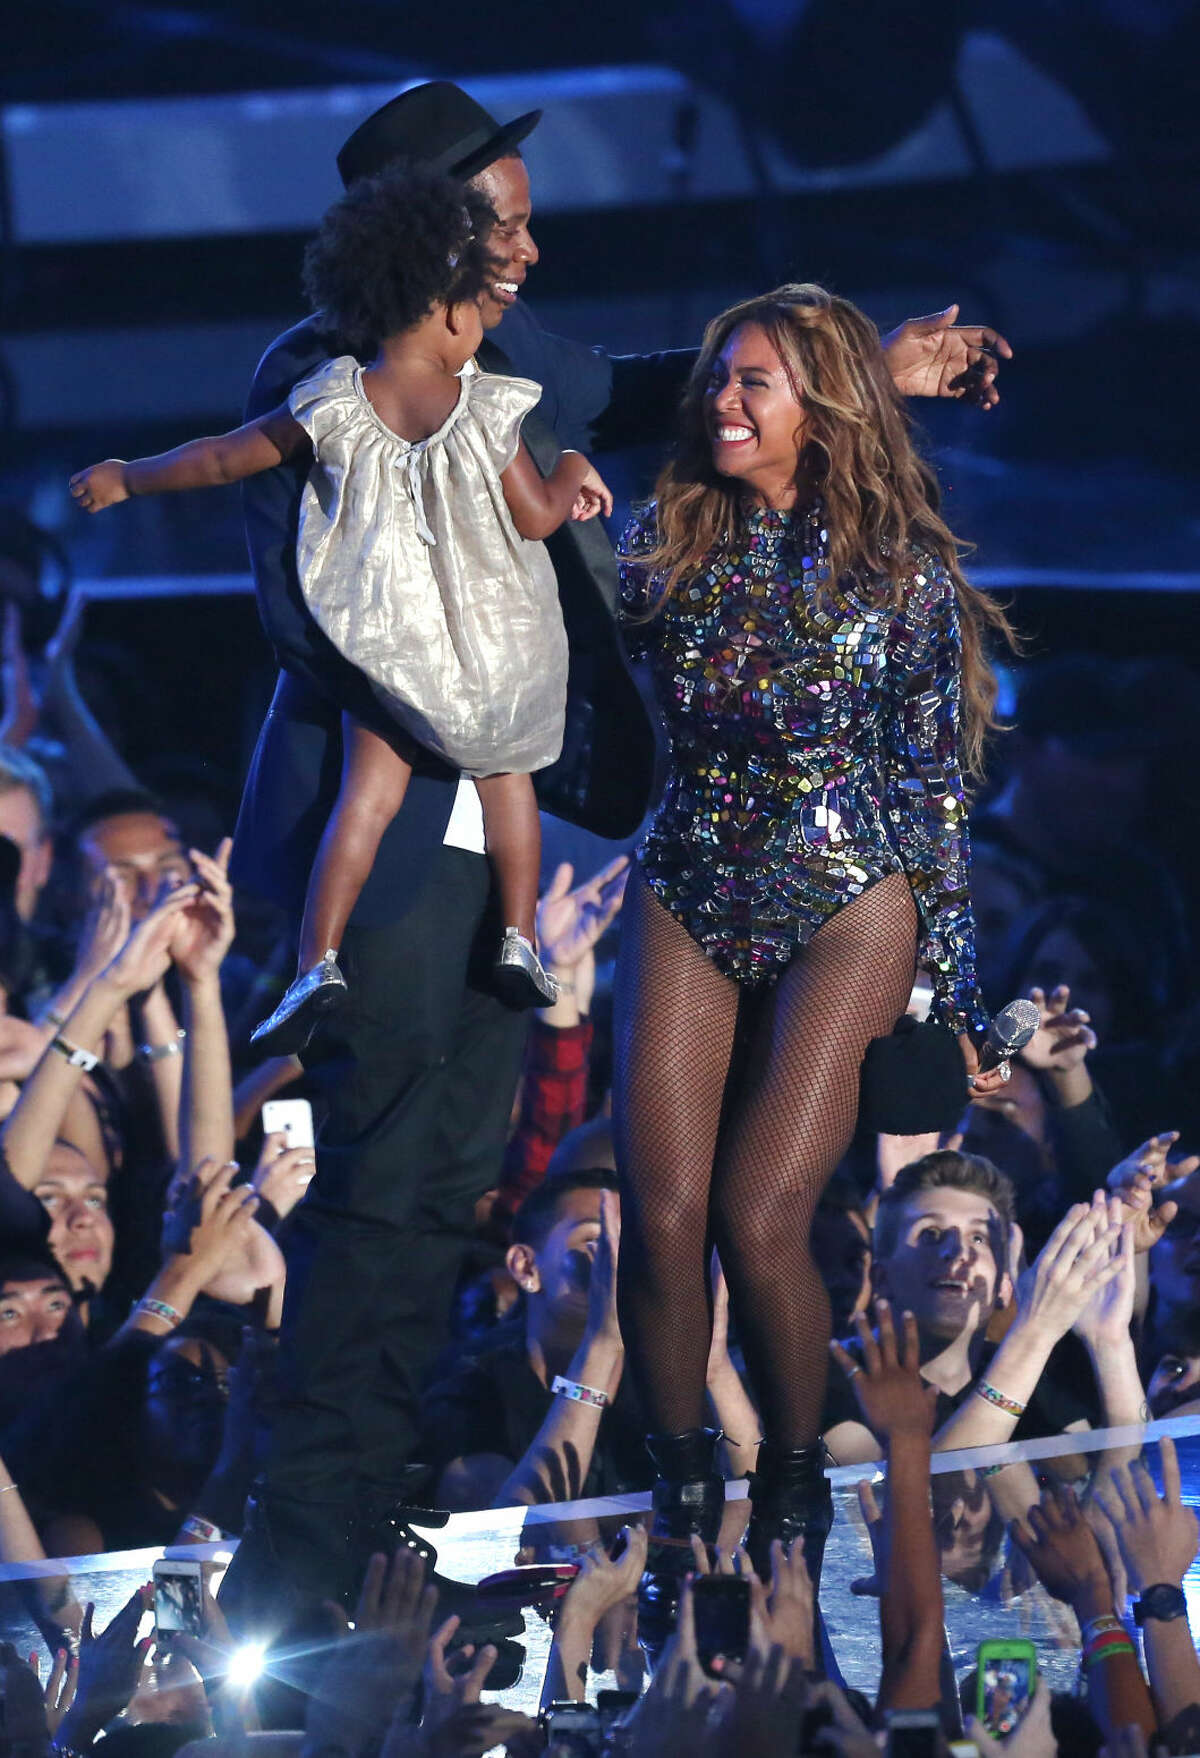 Beyonce accepts the Video Vanguard Award at the MTV Video Music Awards at The Forum on Sunday, Aug. 24, 2014, in Inglewood, Calif. Looking on from left is Blue Ivy and Jay-Z. (Photo by Matt Sayles/Invision/AP)